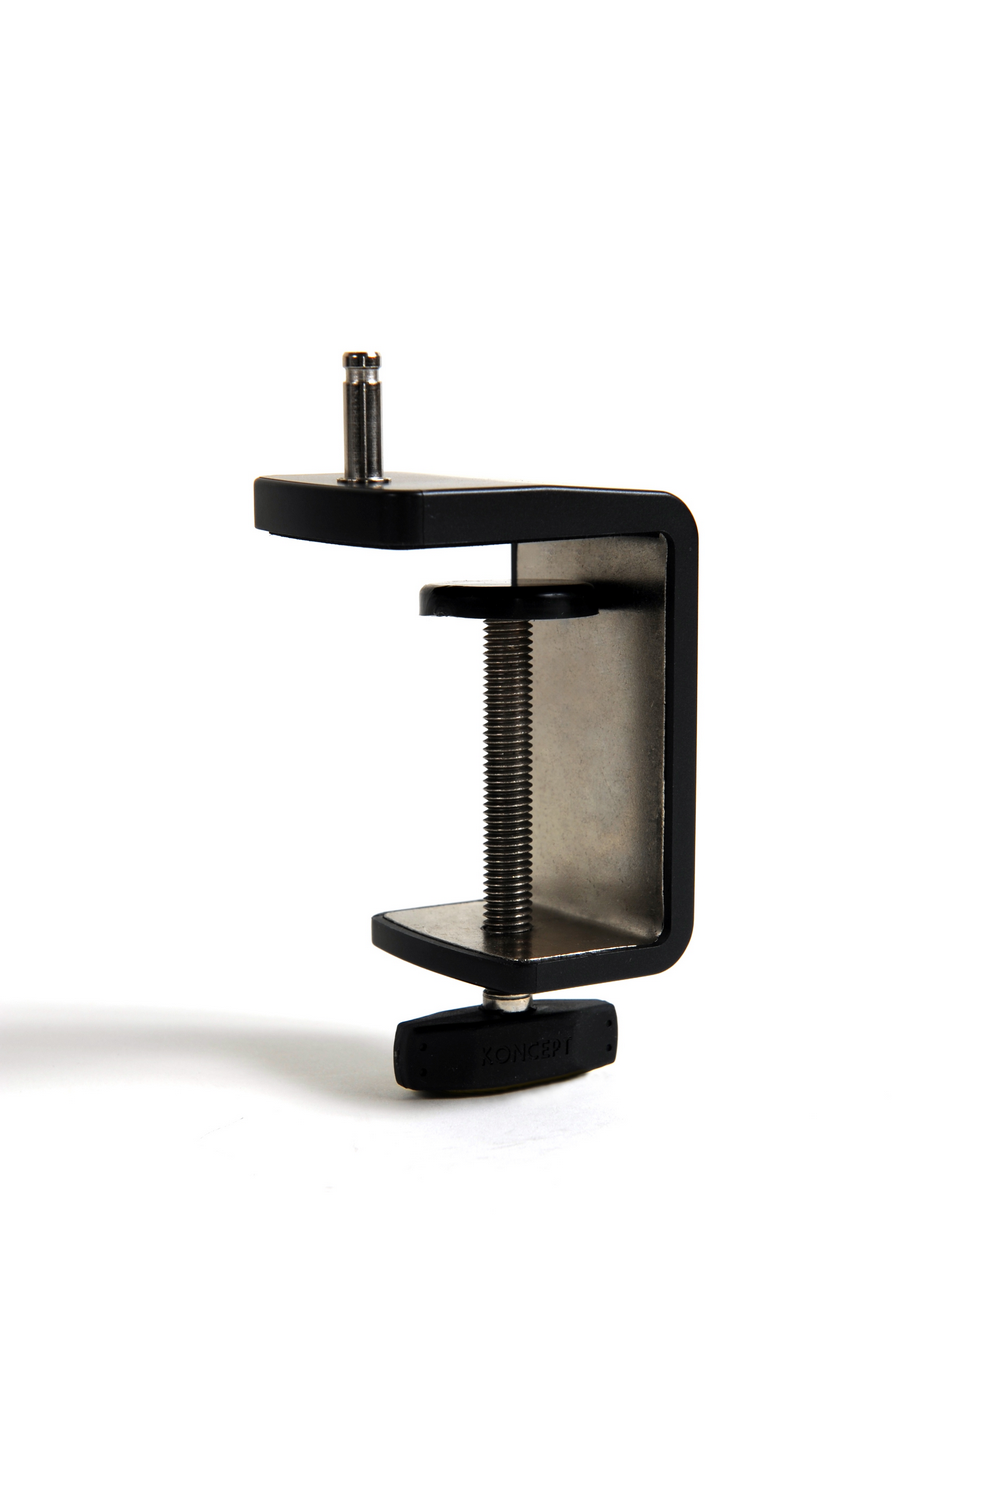 Desk Clamp from the Z Bar collection by Koncept MT01C3 MBK